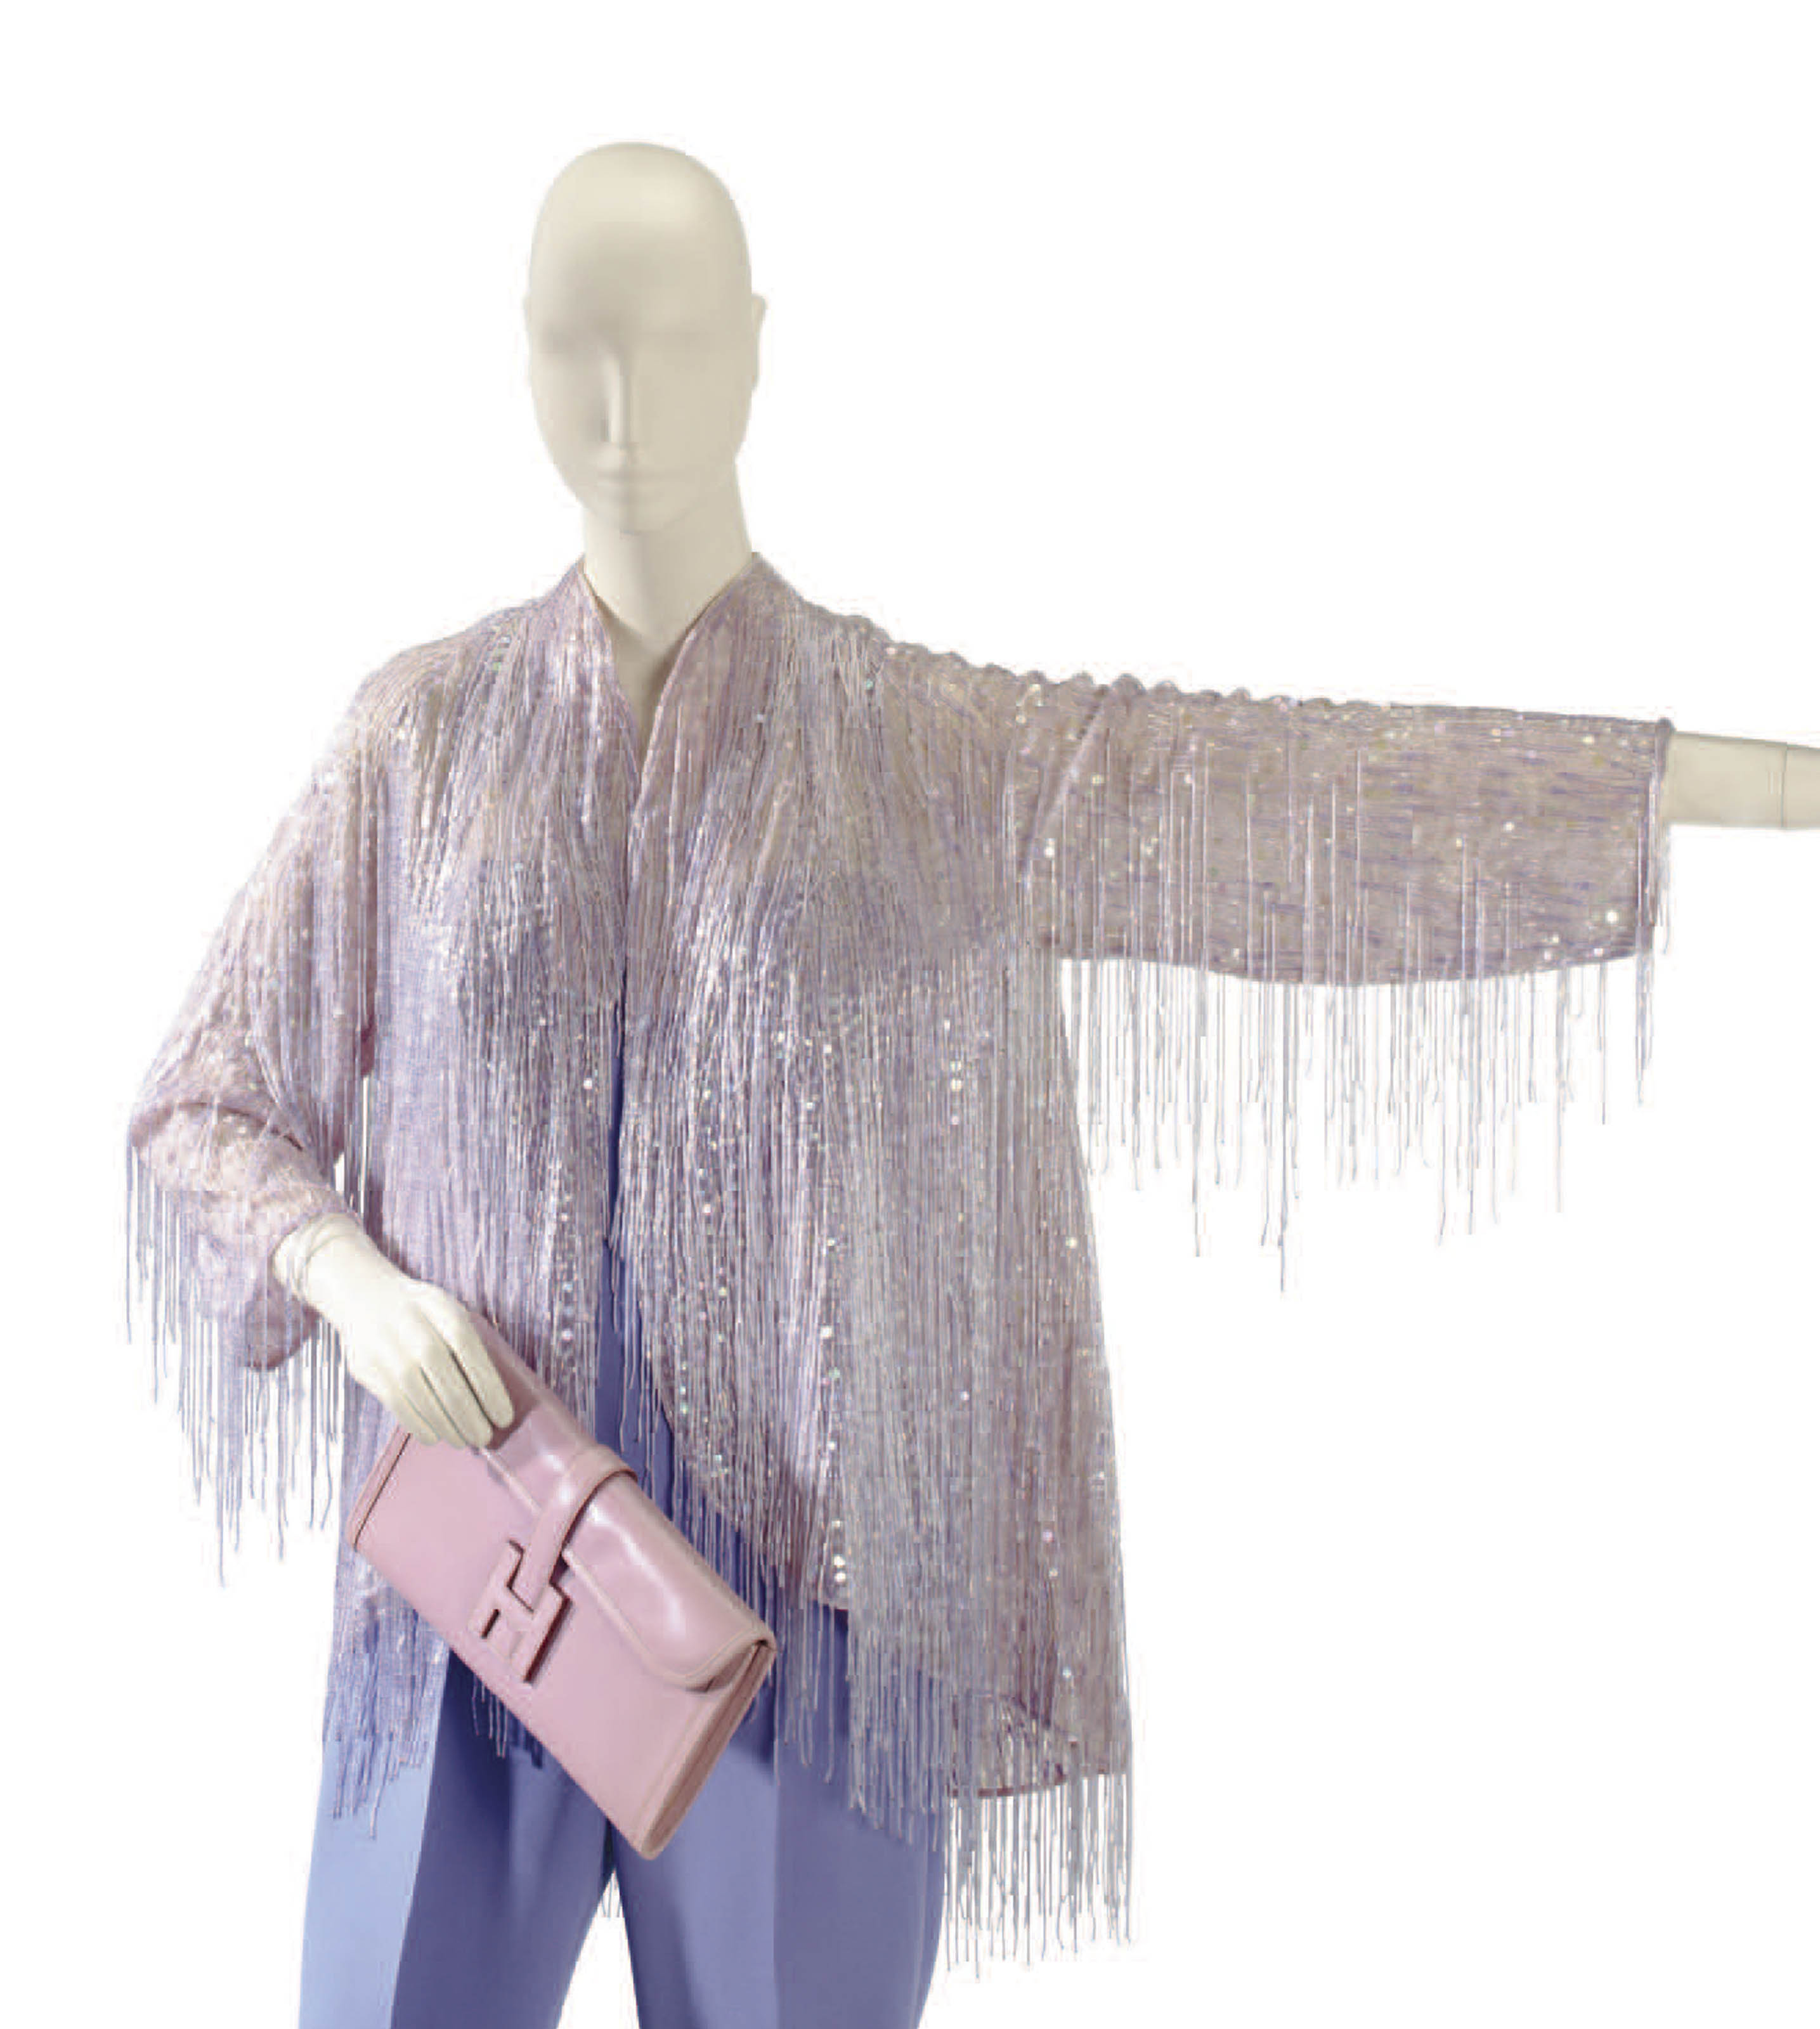 A HALSTON LAVENDER BUGLE BEAD FRINGED EVENING JACKET AND HERMÈS JIGE POCHETTE